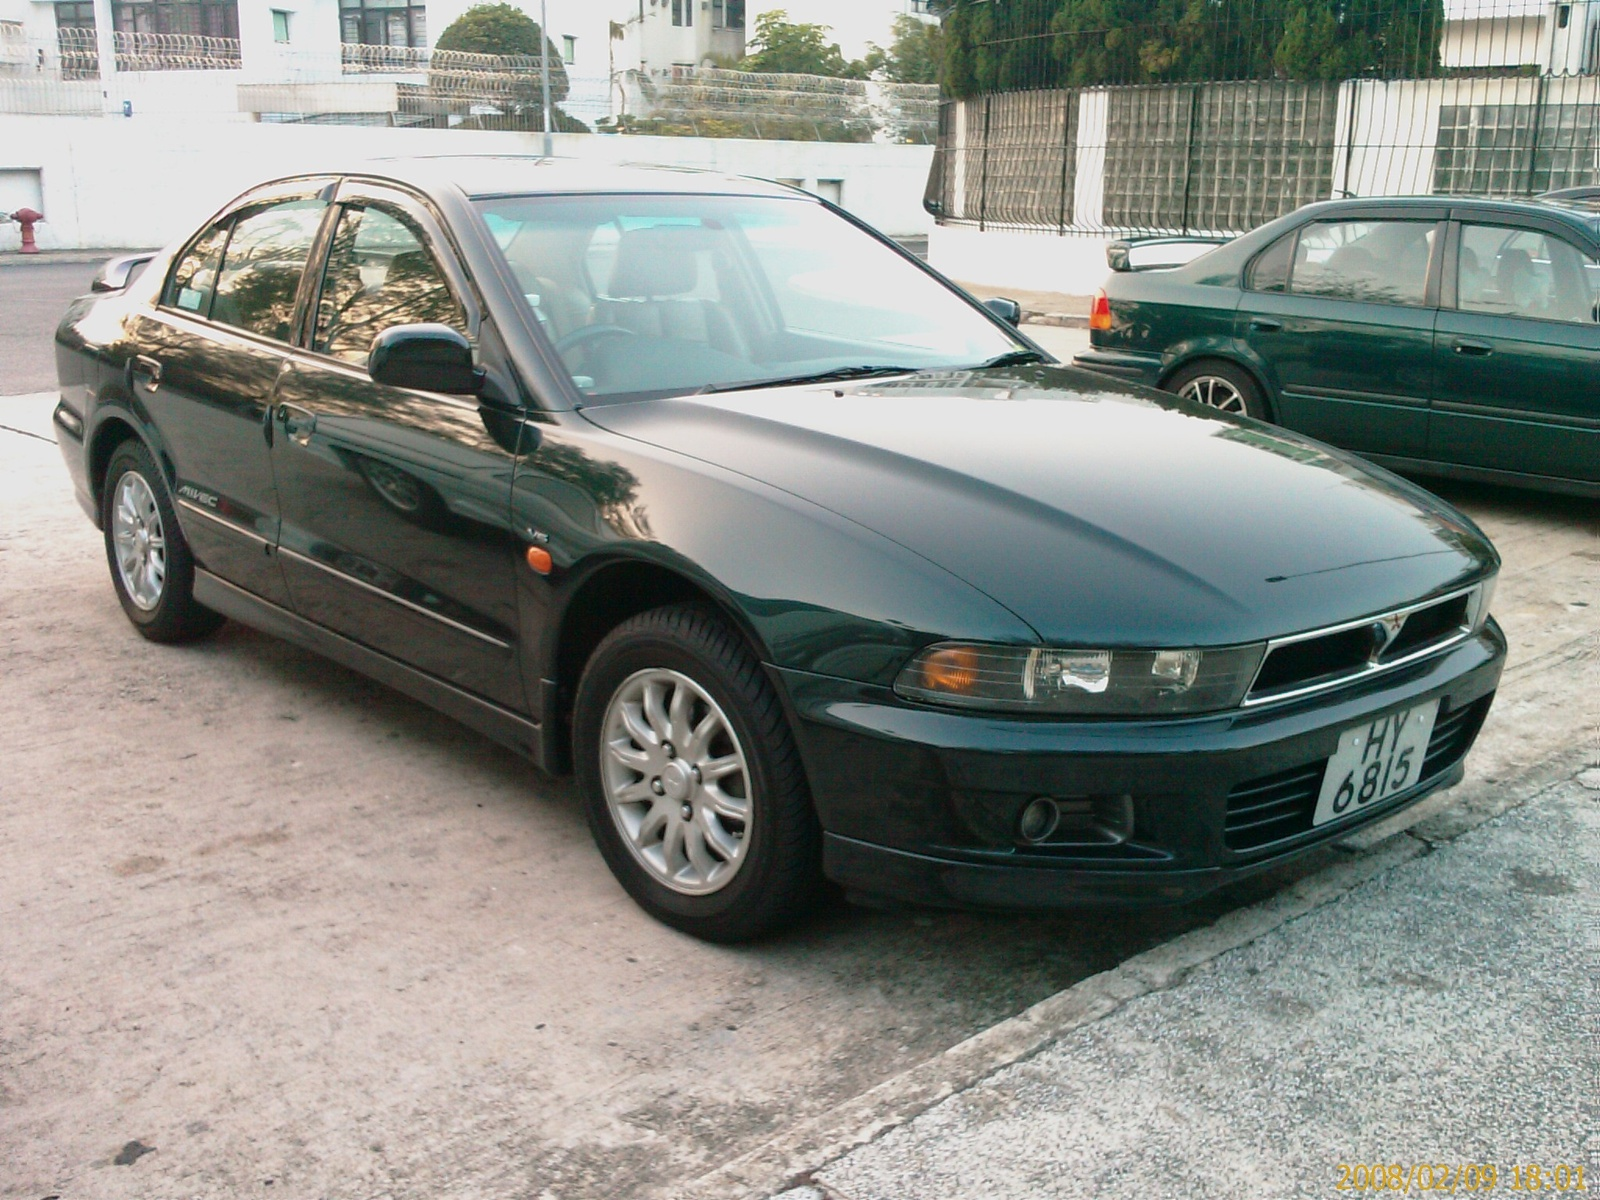 2001 mitsubishi galant with 5077 1998 Mitsubishi Galant 2 on 133262 Interior Show Off additionally 1999 as well Sujet2 further 5077 1998 Mitsubishi Galant 2 besides Watch.